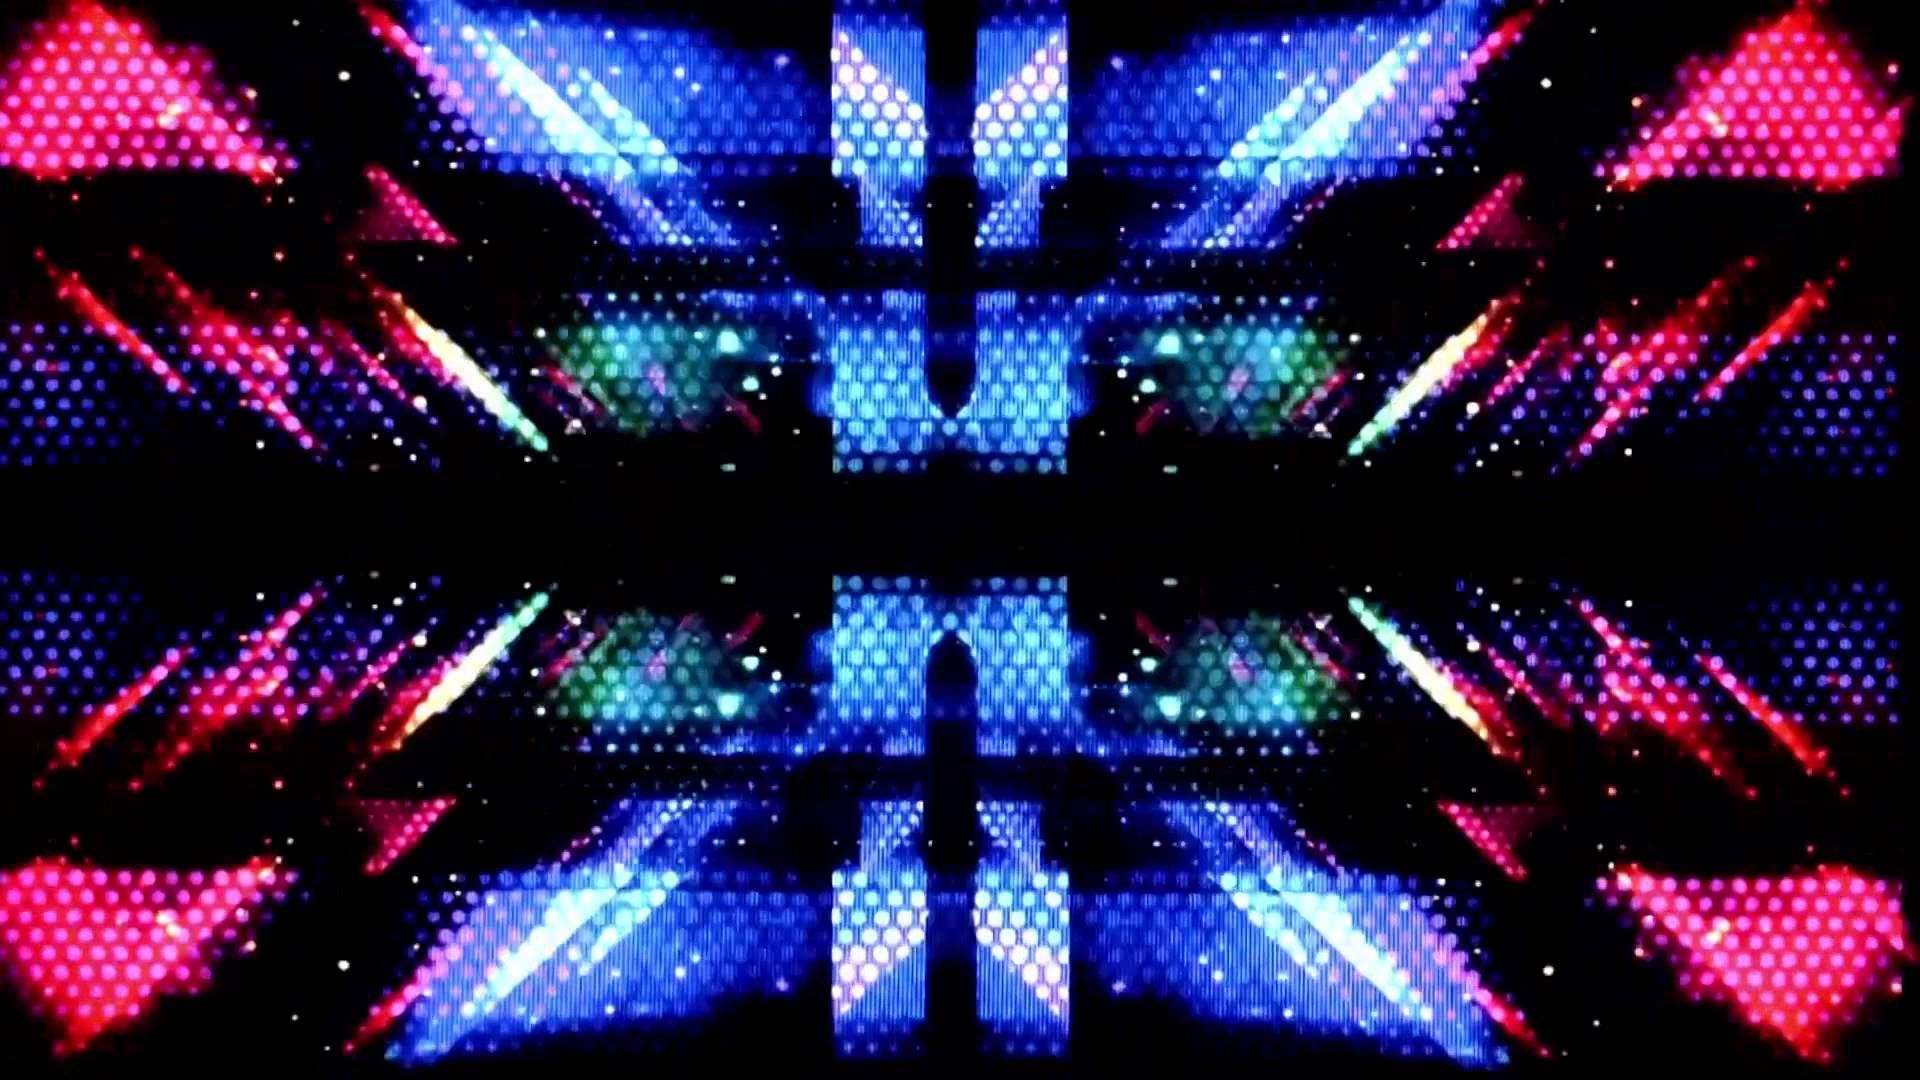 Club Visual 152 Free VJ loop, VJ clip, video background